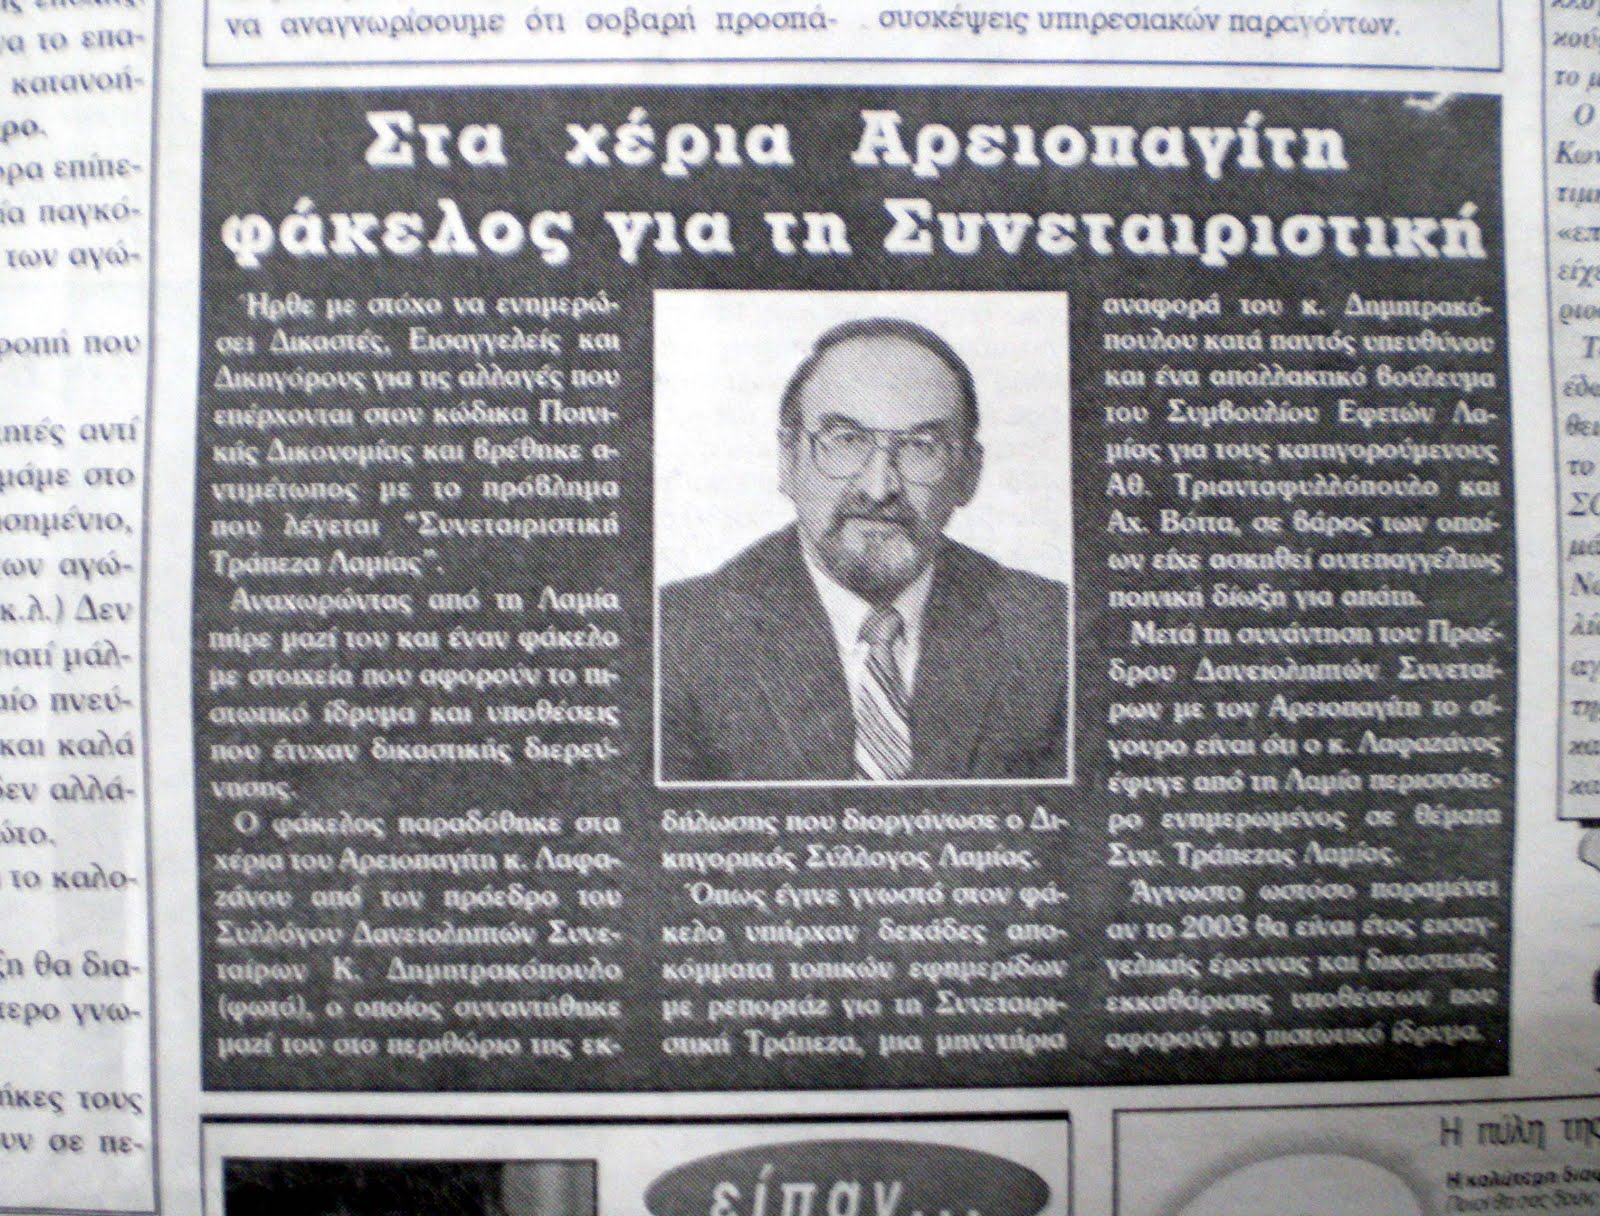 Στα χέρια Αρεοπαγίτη ο Φάκελος της Σ.Τ.Λ...2003